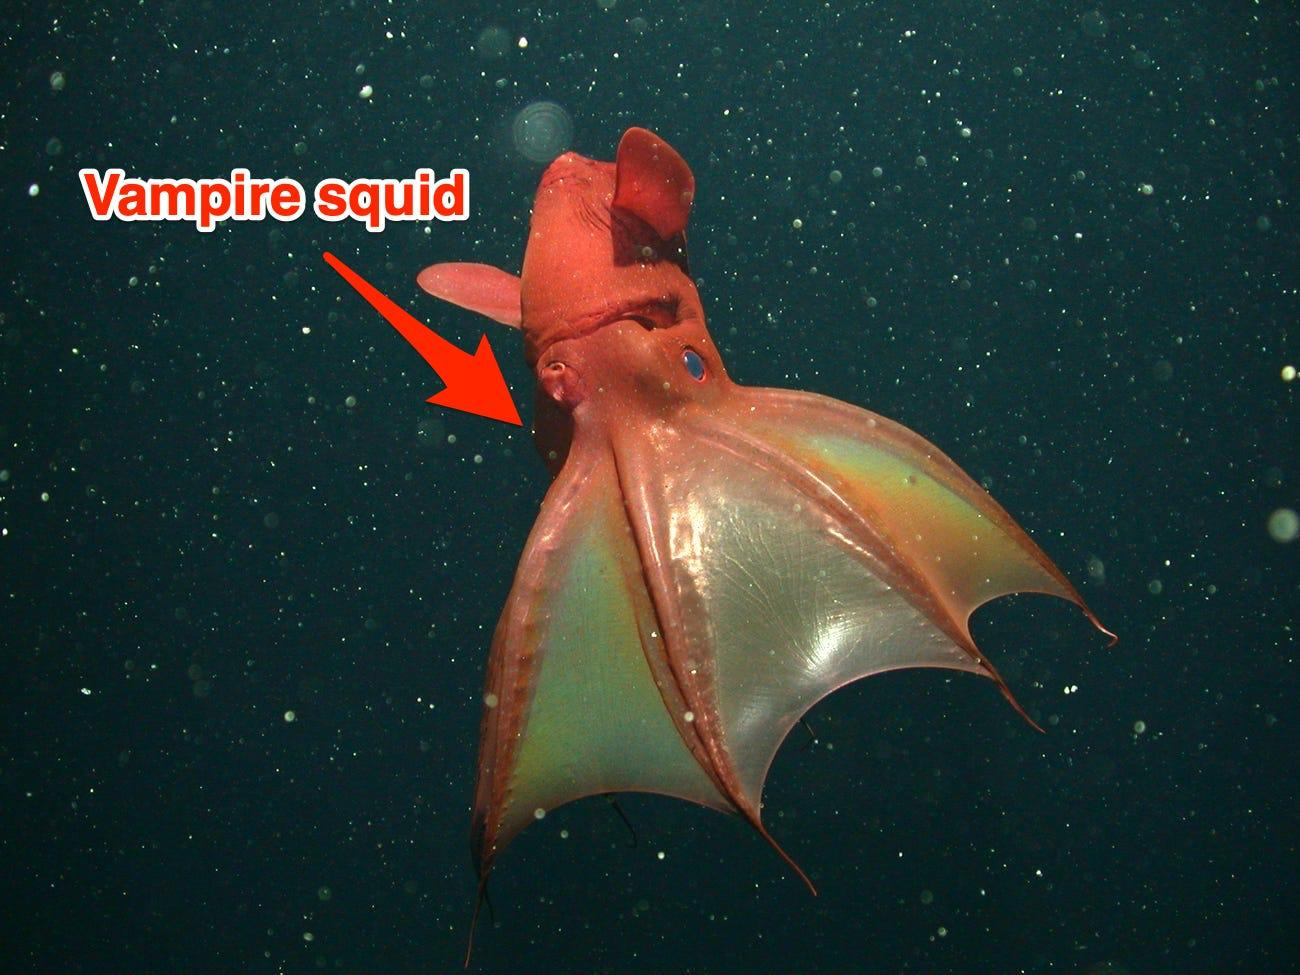 16 creatures from the bottom of the ocean that will give you nightmares